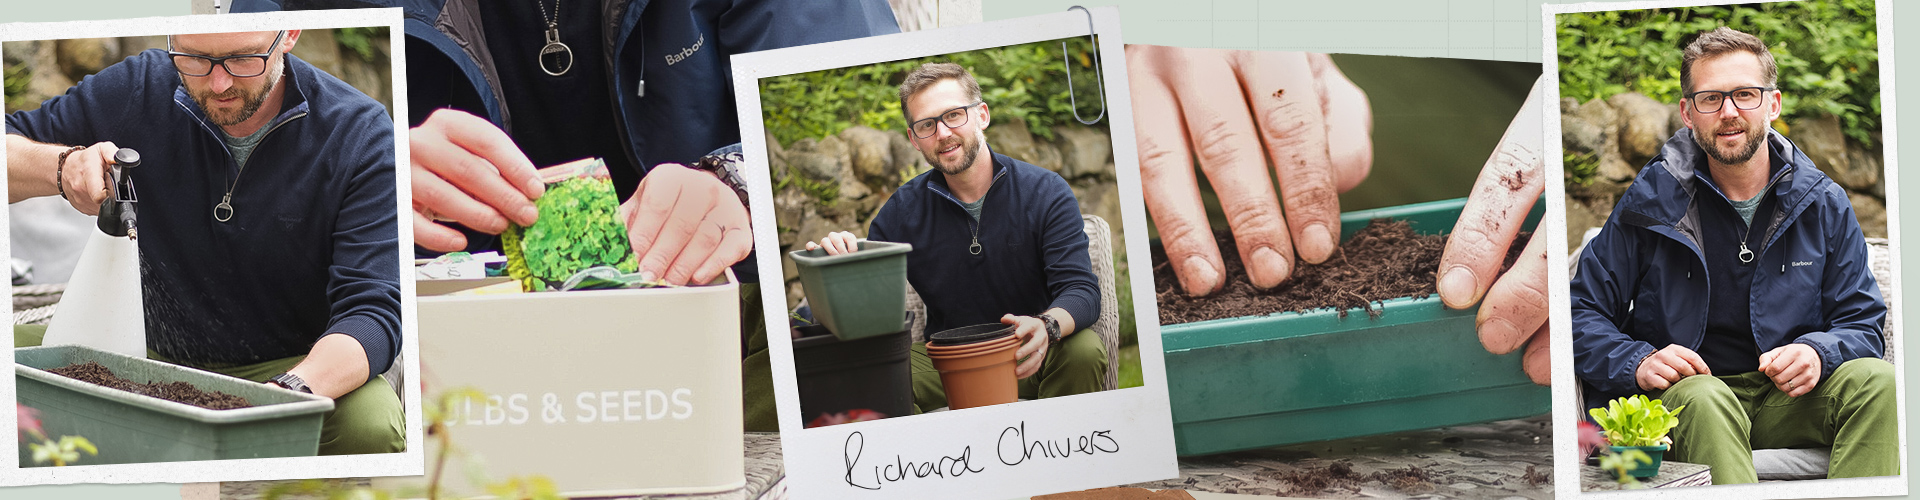 Homegrown Veg with Richard Chivers